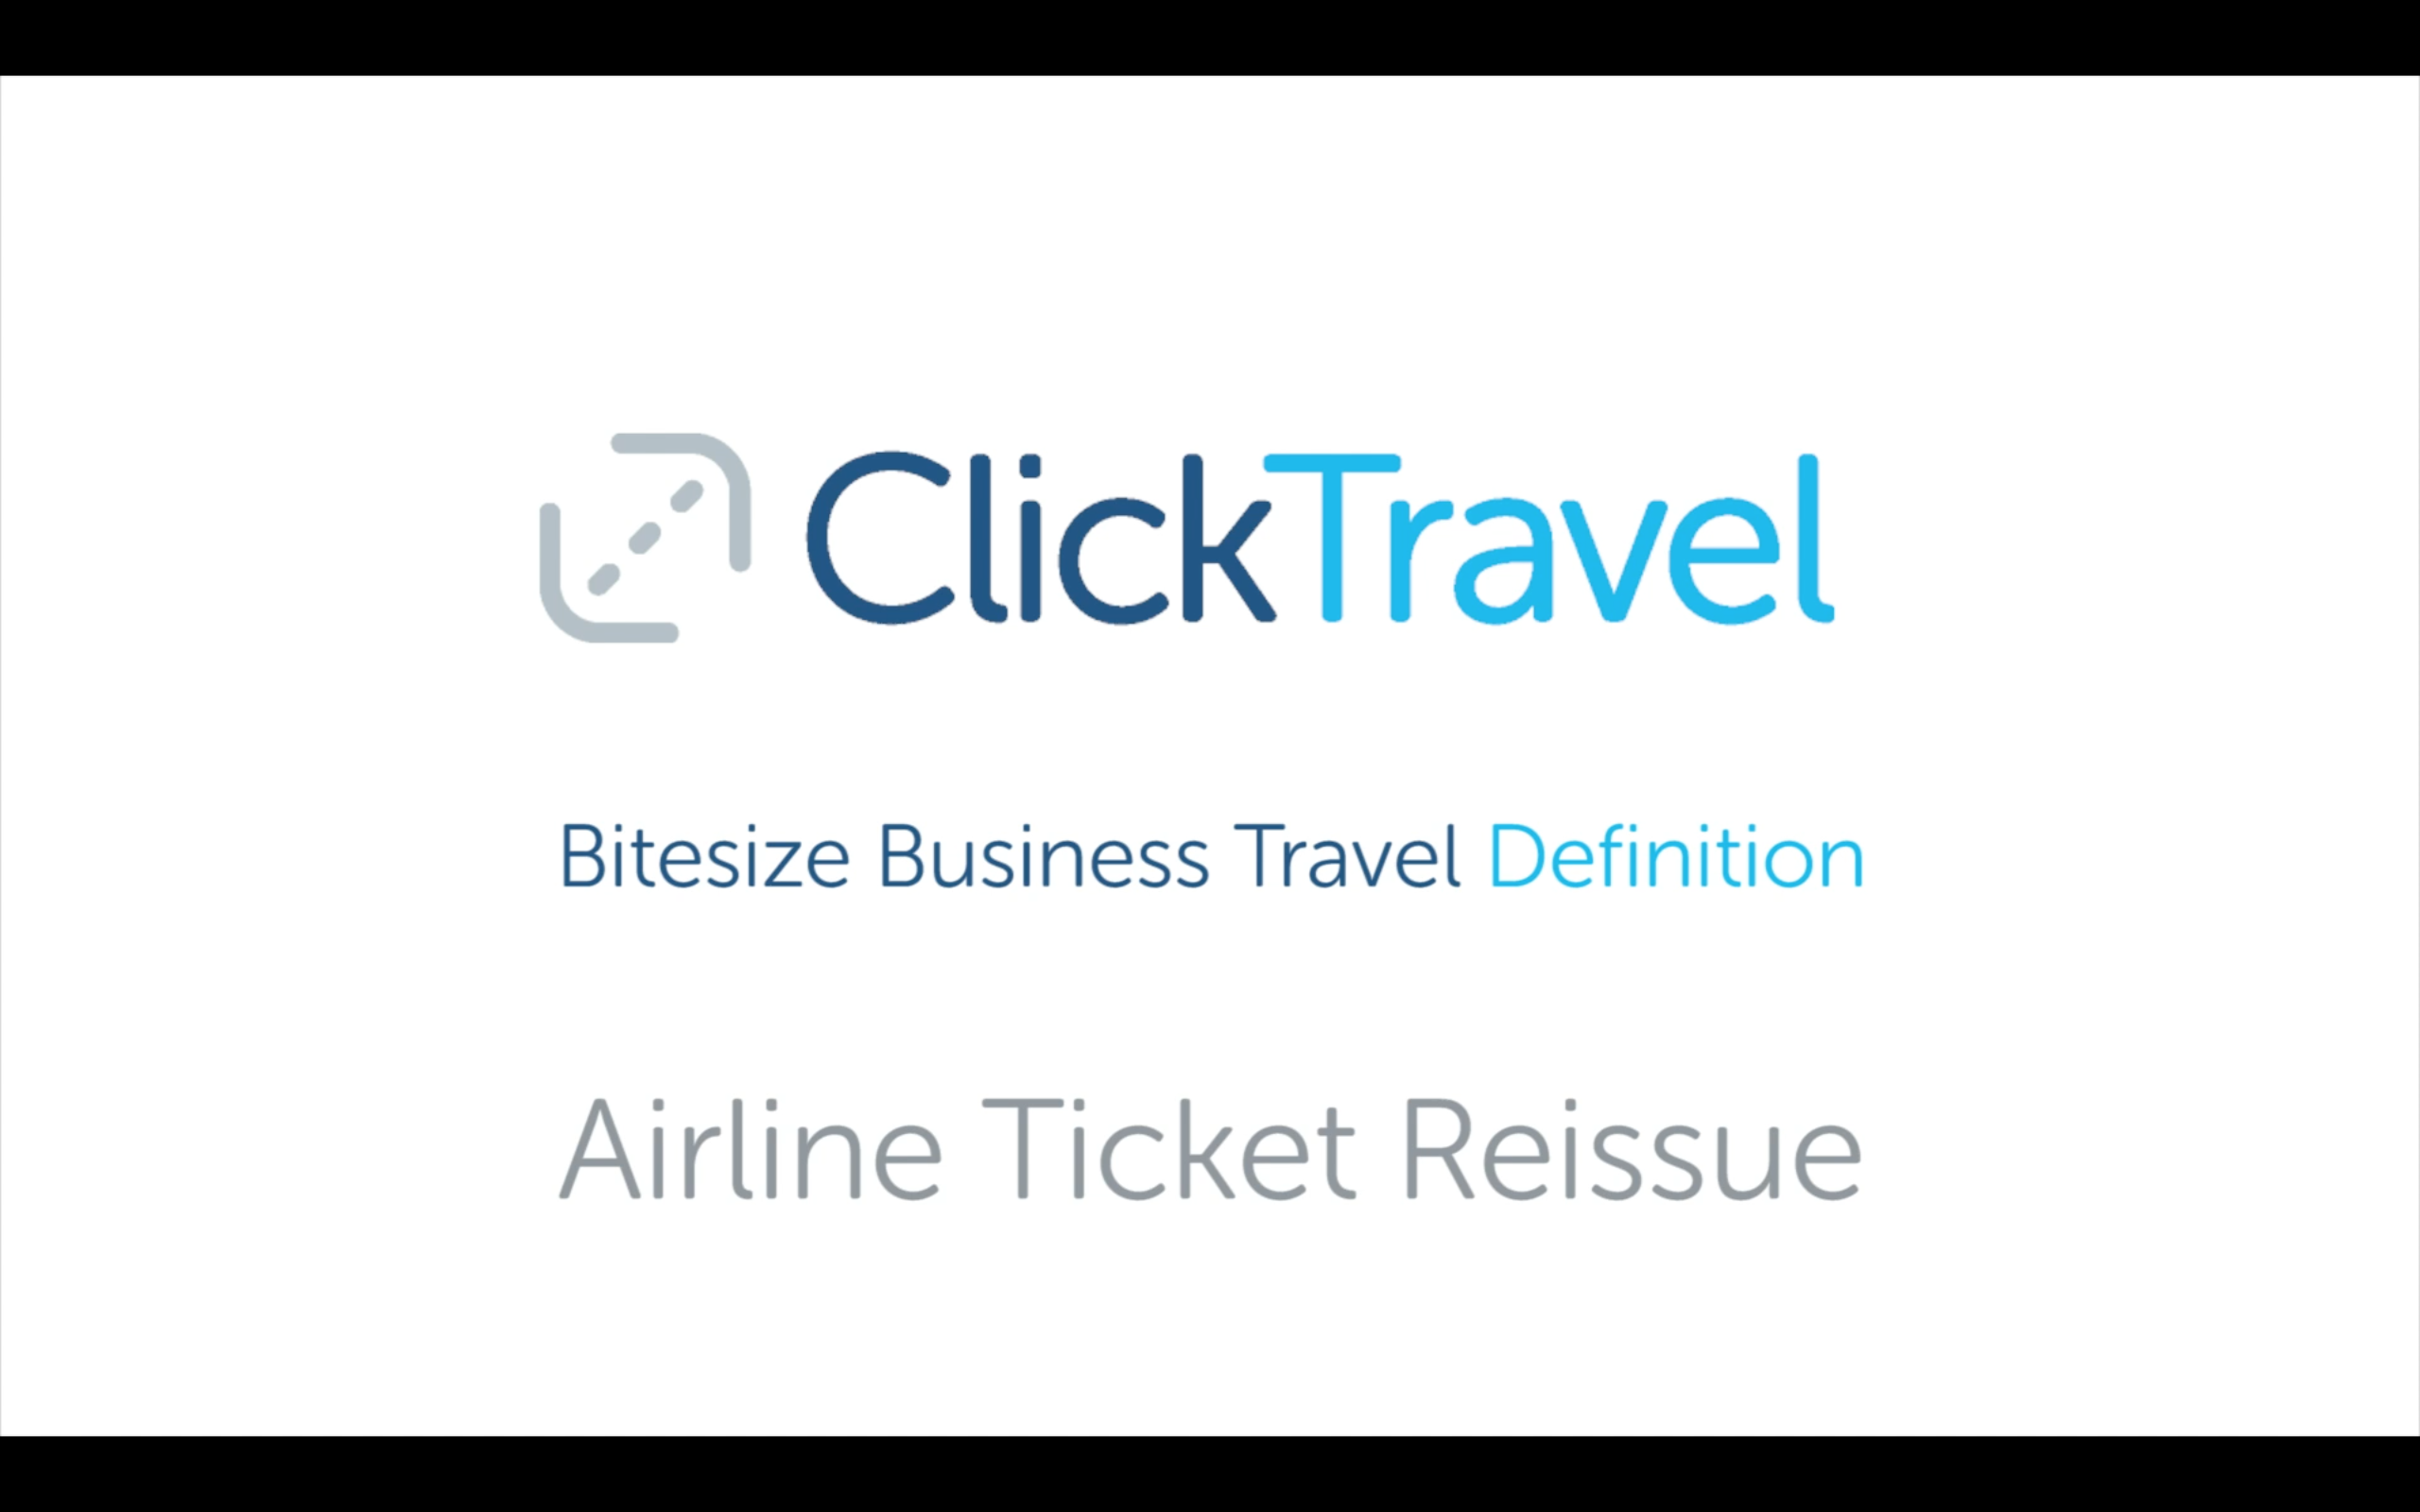 [VIDEO] Bitesize business travel definition: airline ticket reissue